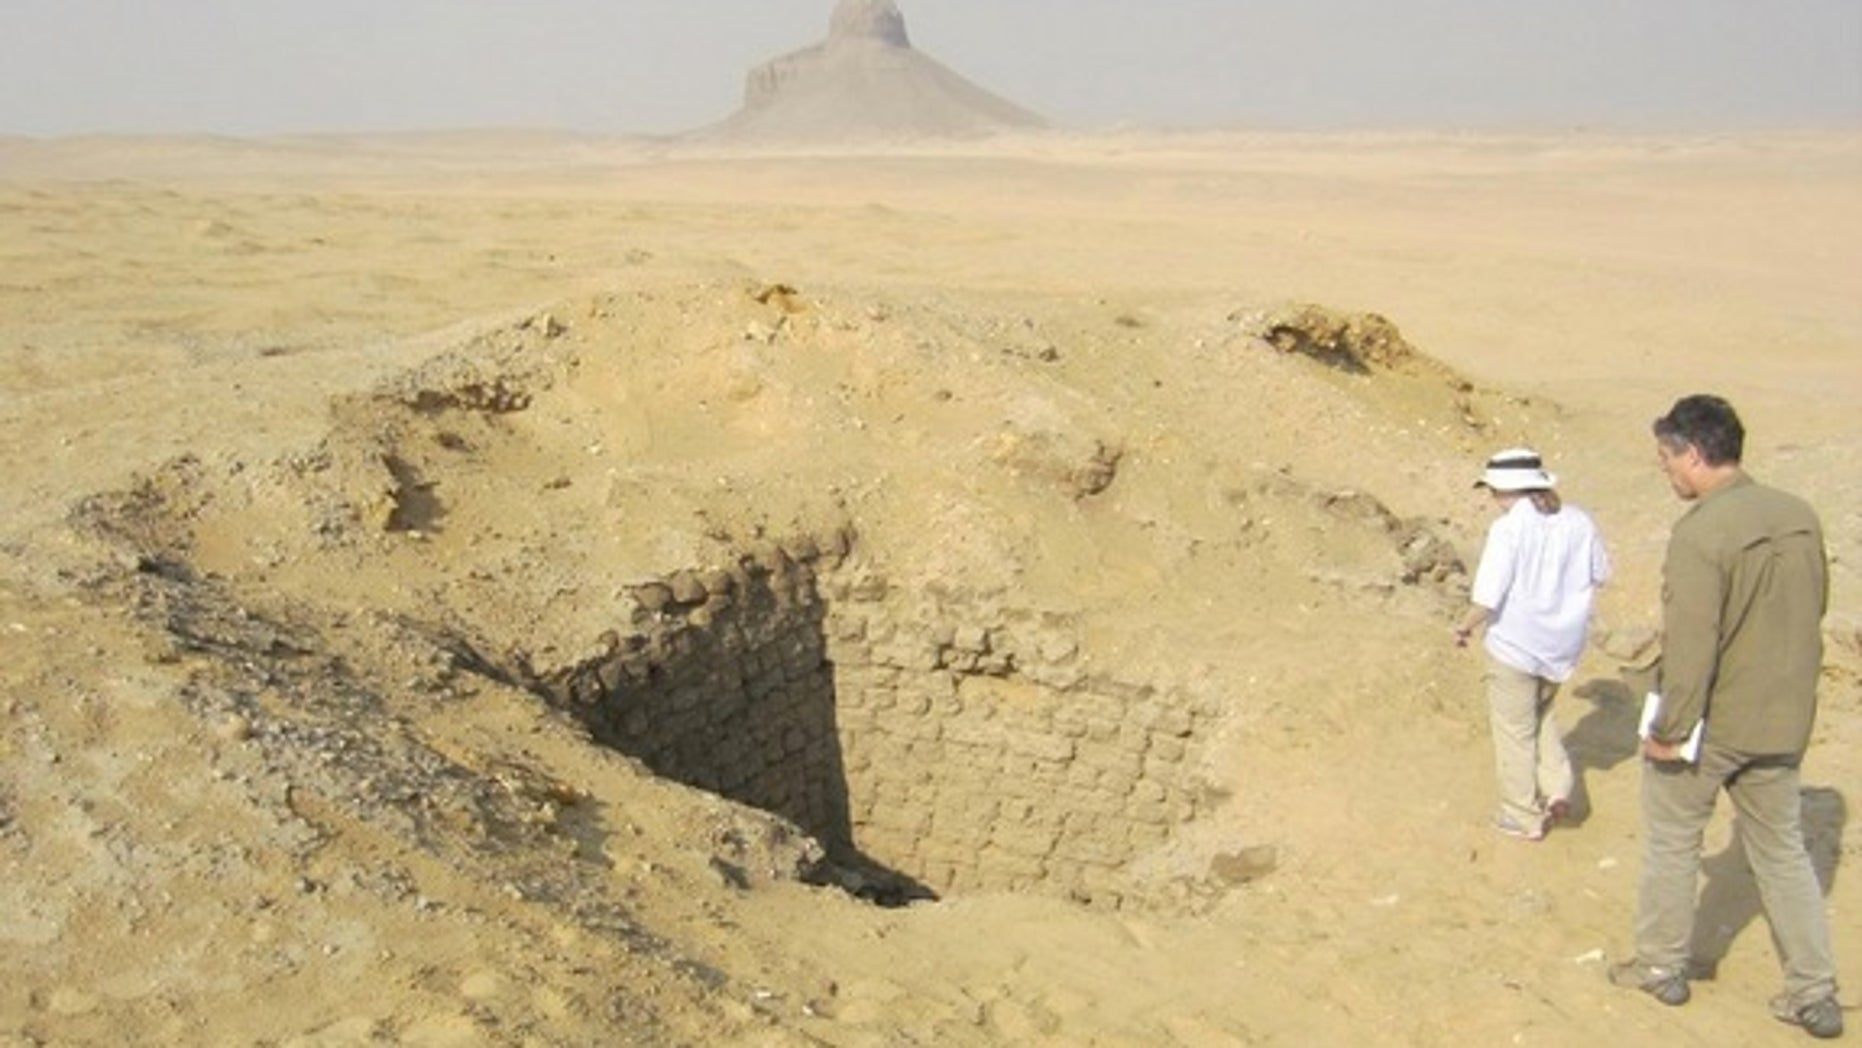 Months after seeing evidence of looting from space, Parcak and her colleagues went to look at the looting pits in Dahshur for themselves. This one was 10 meters (33 feet) deep.